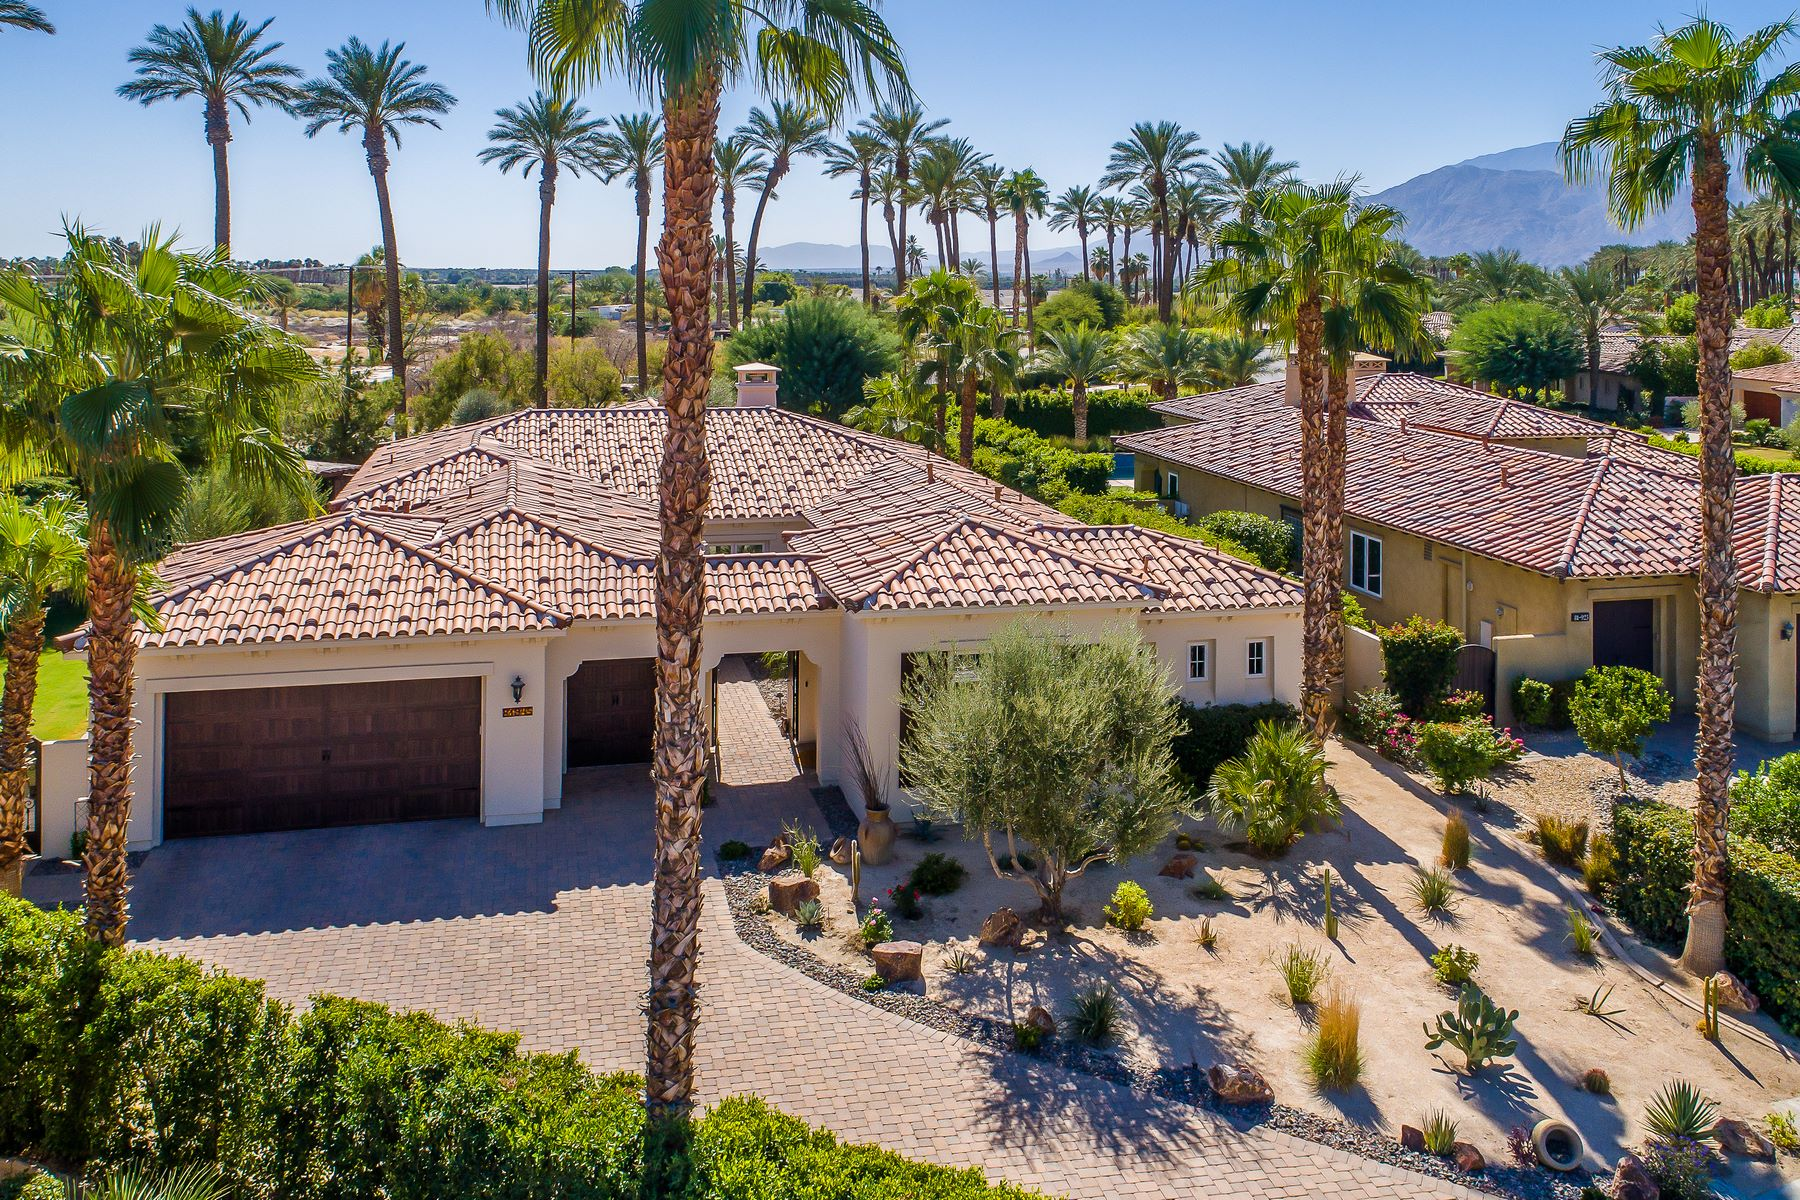 Single Family Homes for Sale at 81945 Elynor Court La Quinta, California 92253 United States